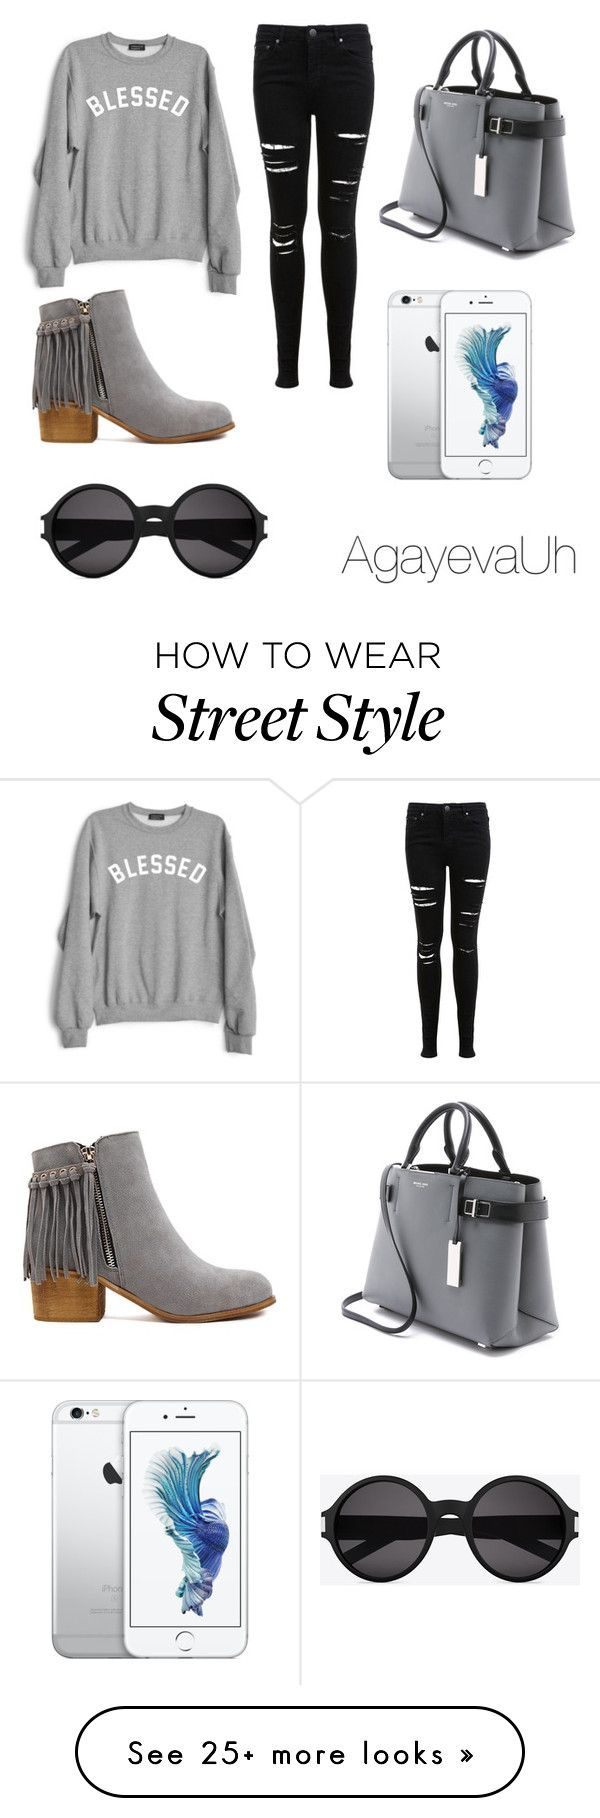 """""""Street style 14."""" by agayevauh on Polyvore featuring Private Party, Miss Selfridge, Michael Kors and Yves Saint Laurent"""